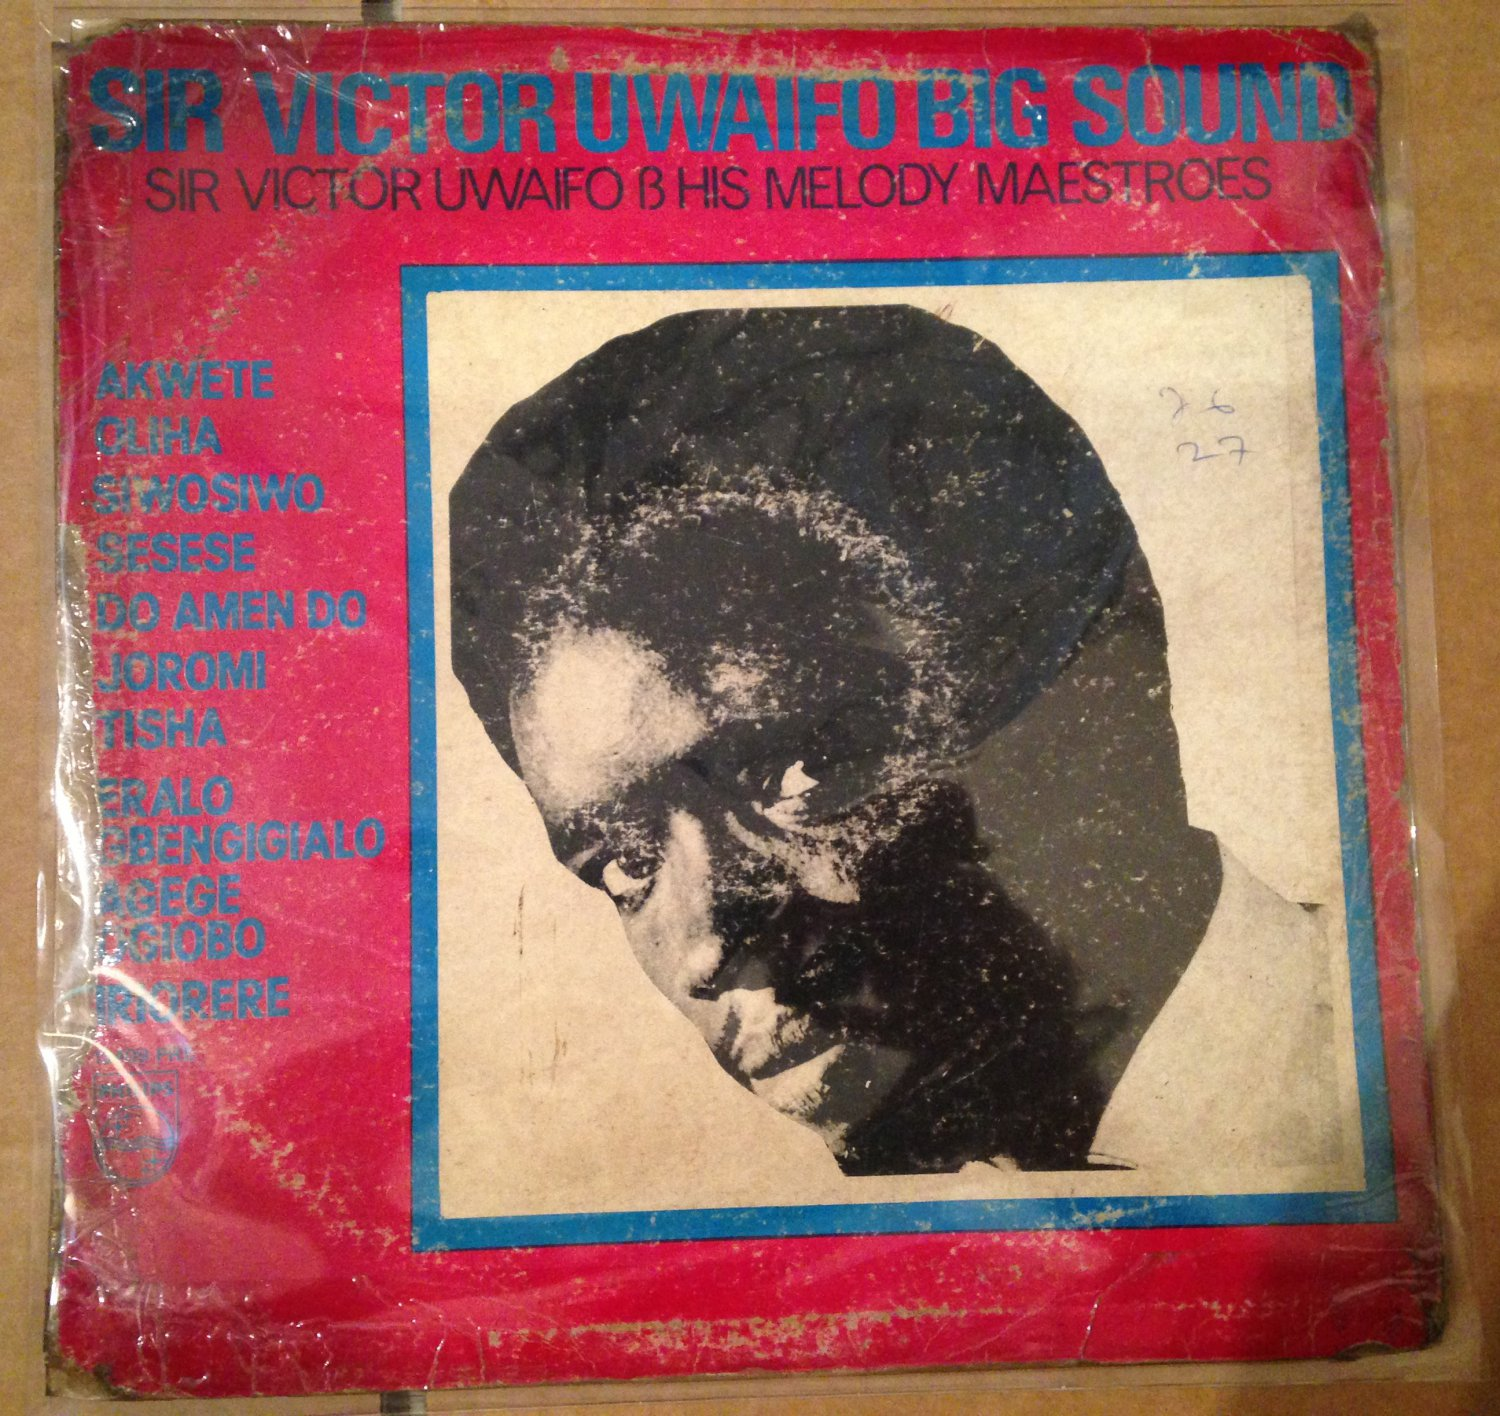 SIR VICTOR UWAIFO & HIS MELODY MAESTROES LP big sound HIGHLIFE NIGERIA mp3 LISTEN